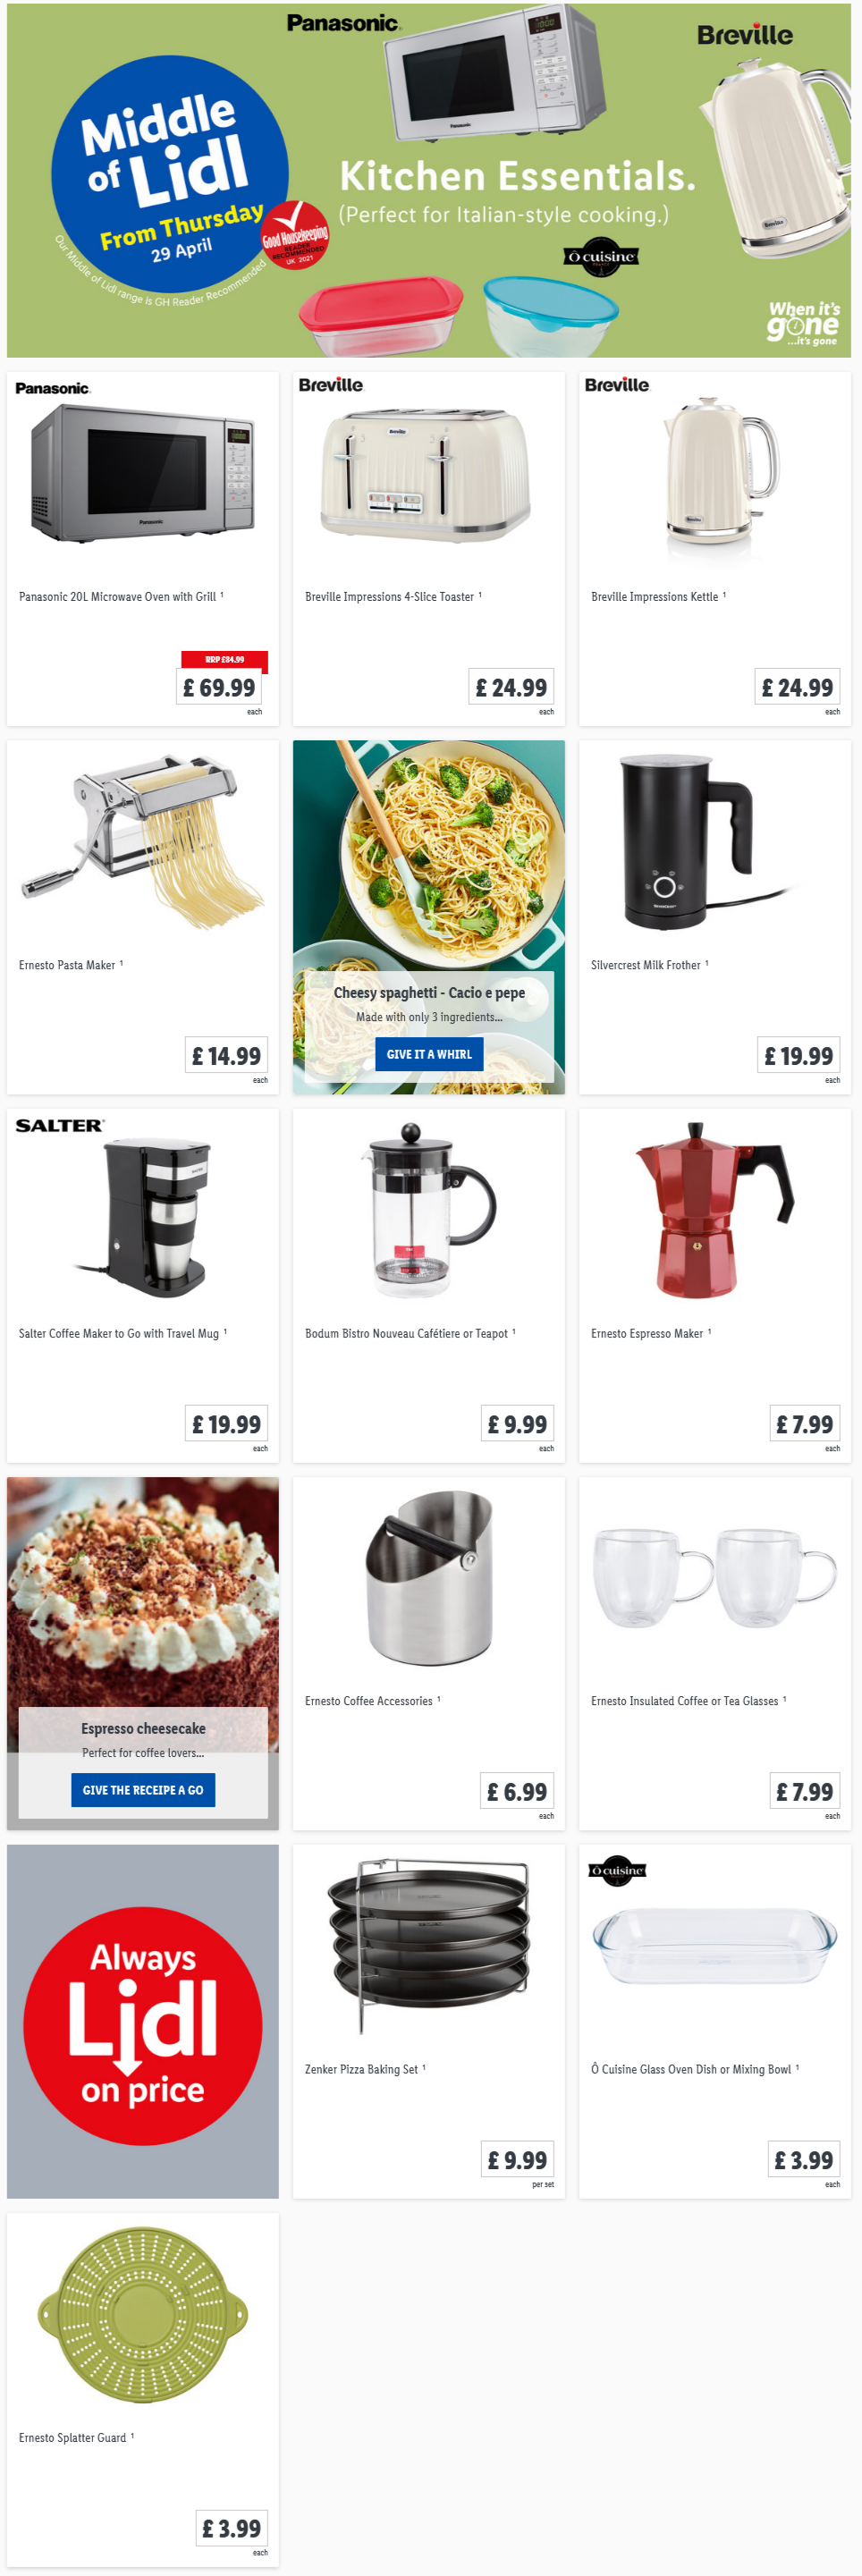 LIDL Kitchen Essentials Offers From Thursday, 29th April 2021